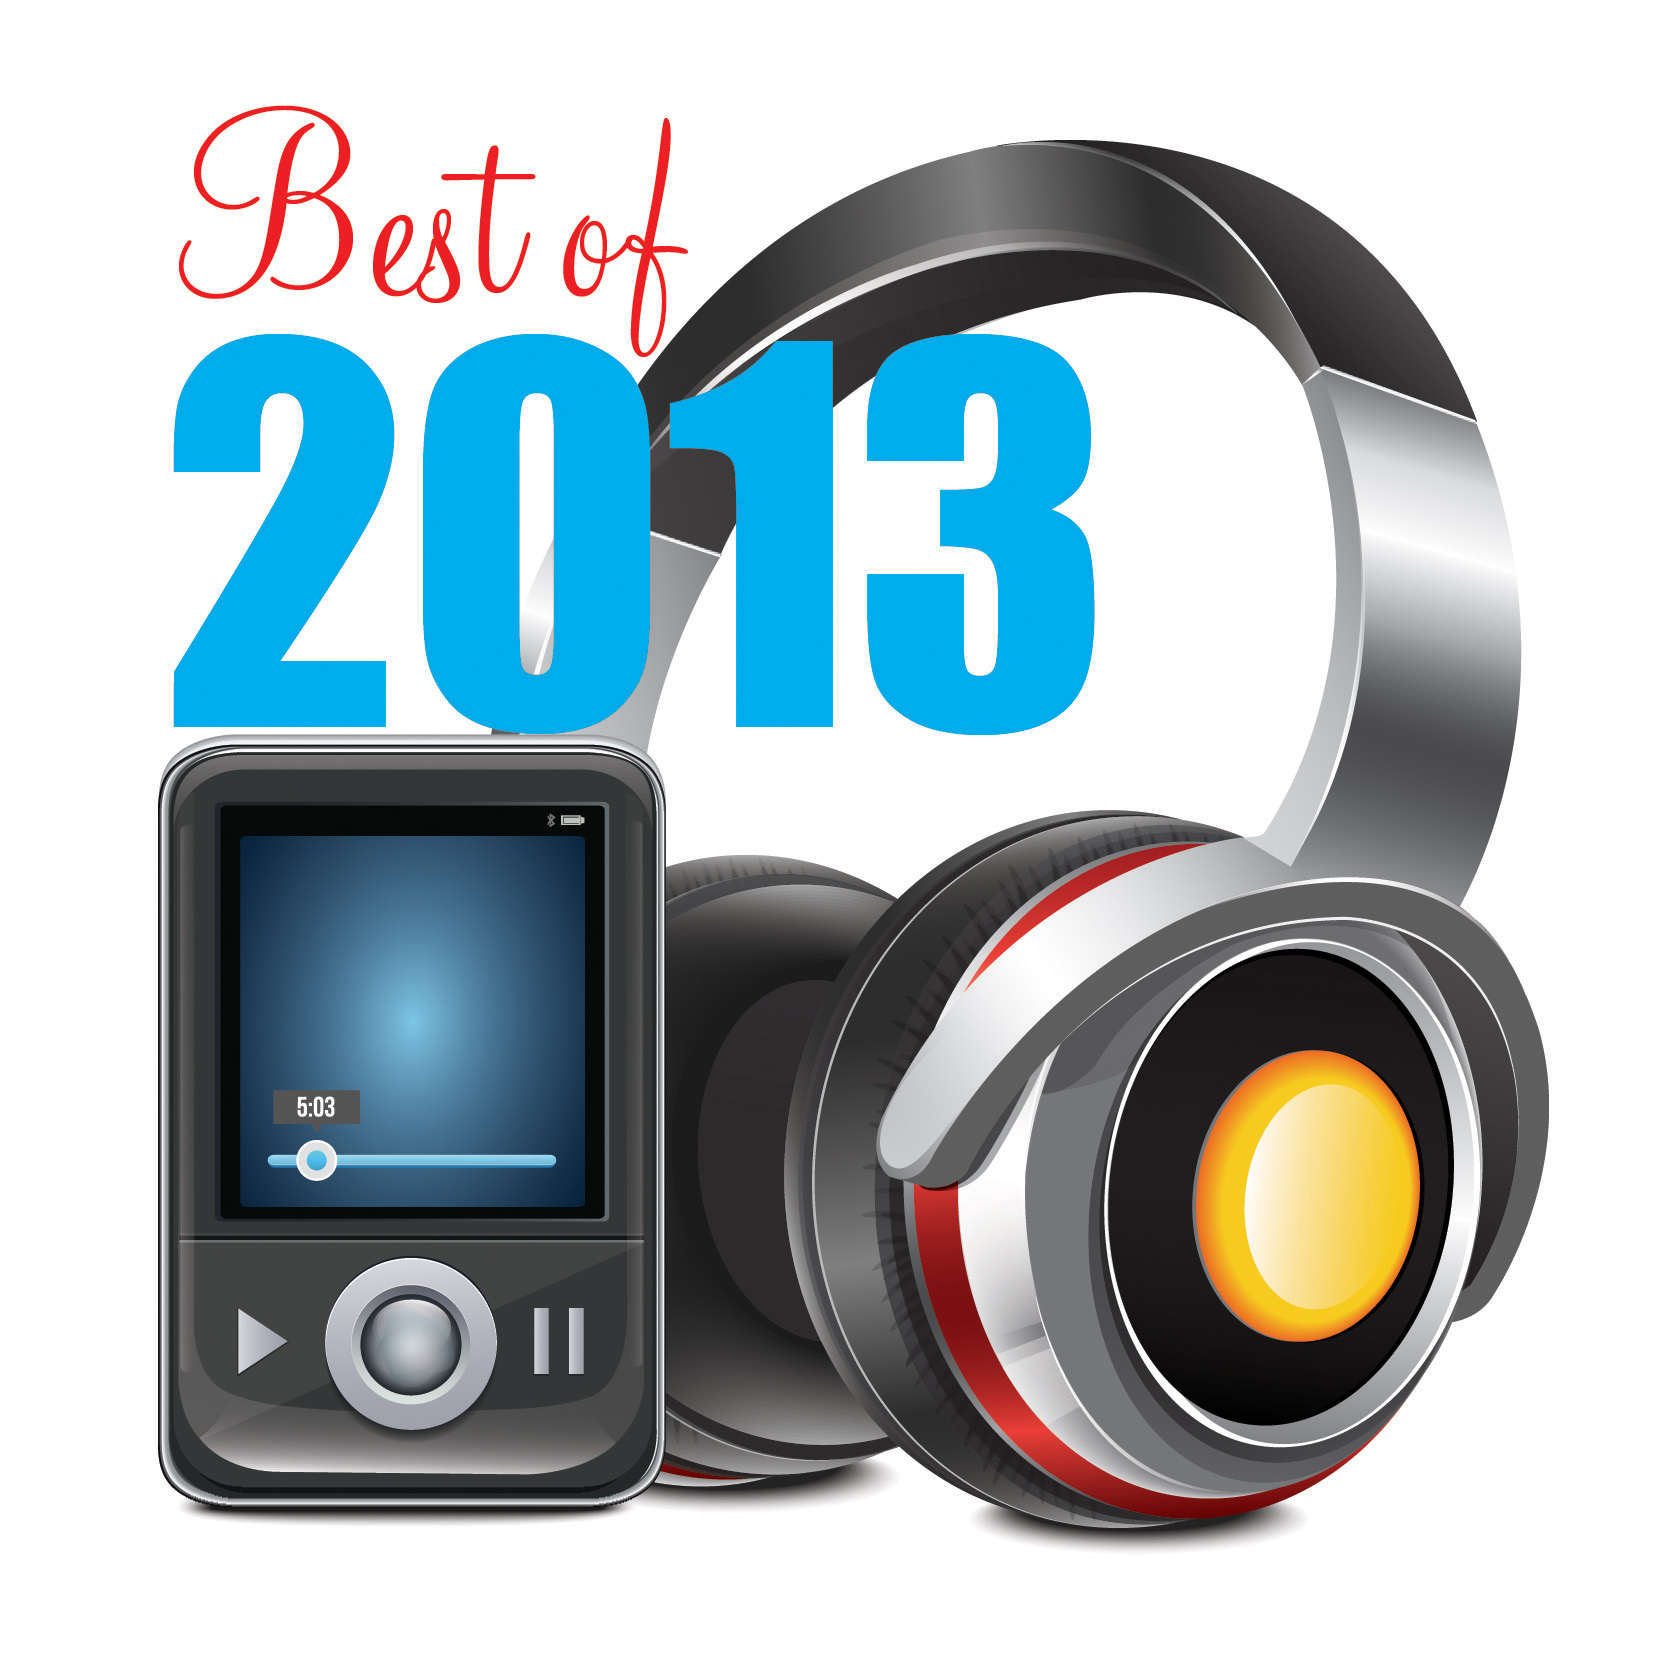 Best of Music 2013 blue